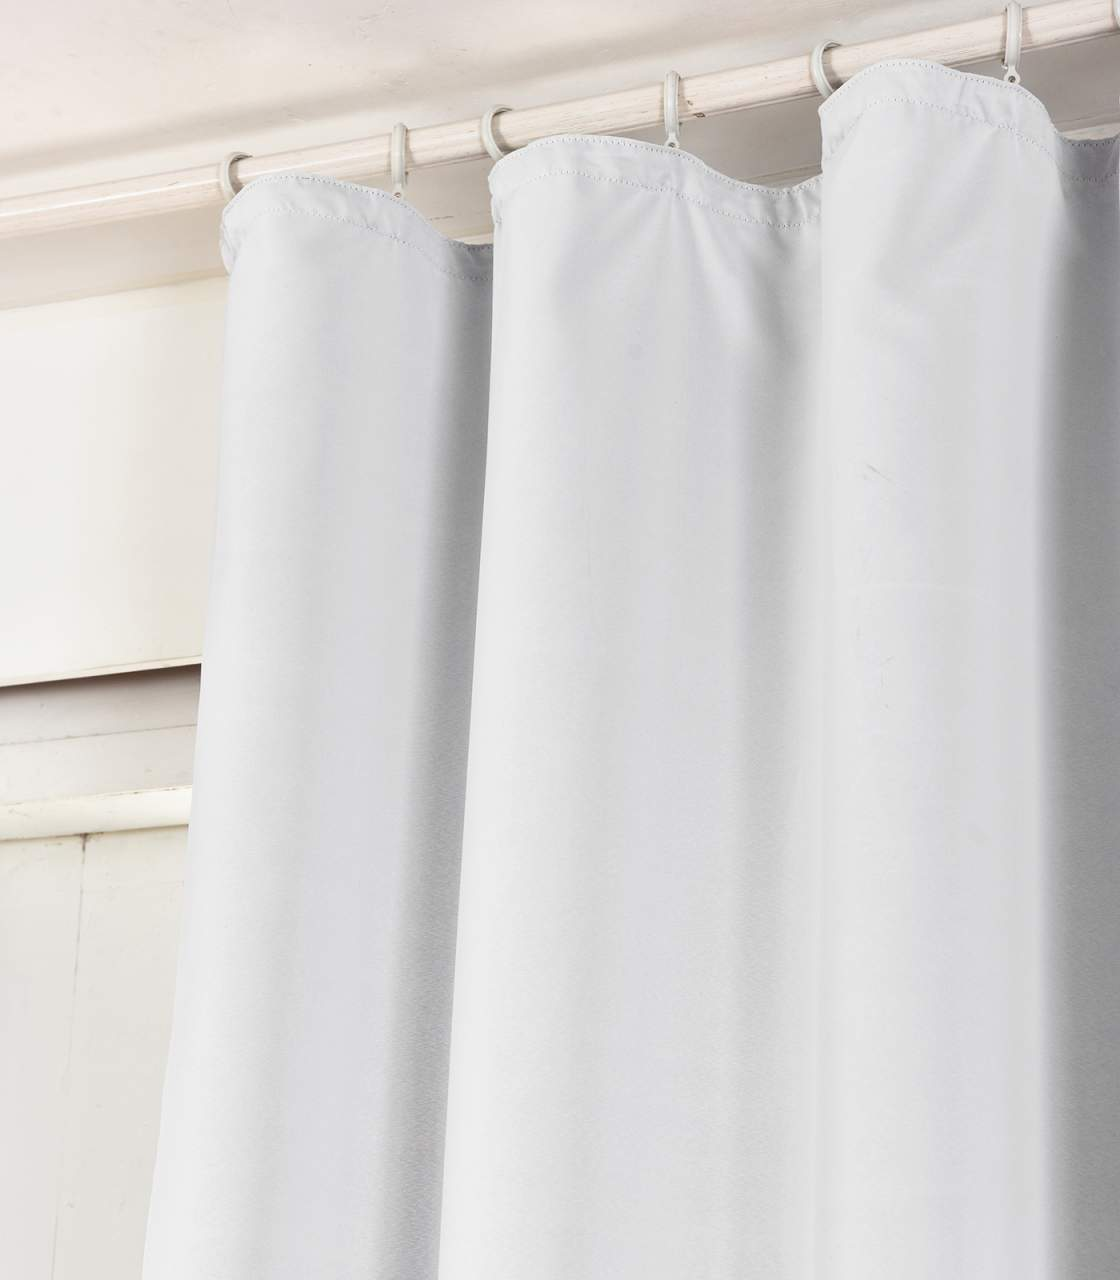 blackout curtain with curling tape white 135x245 cm